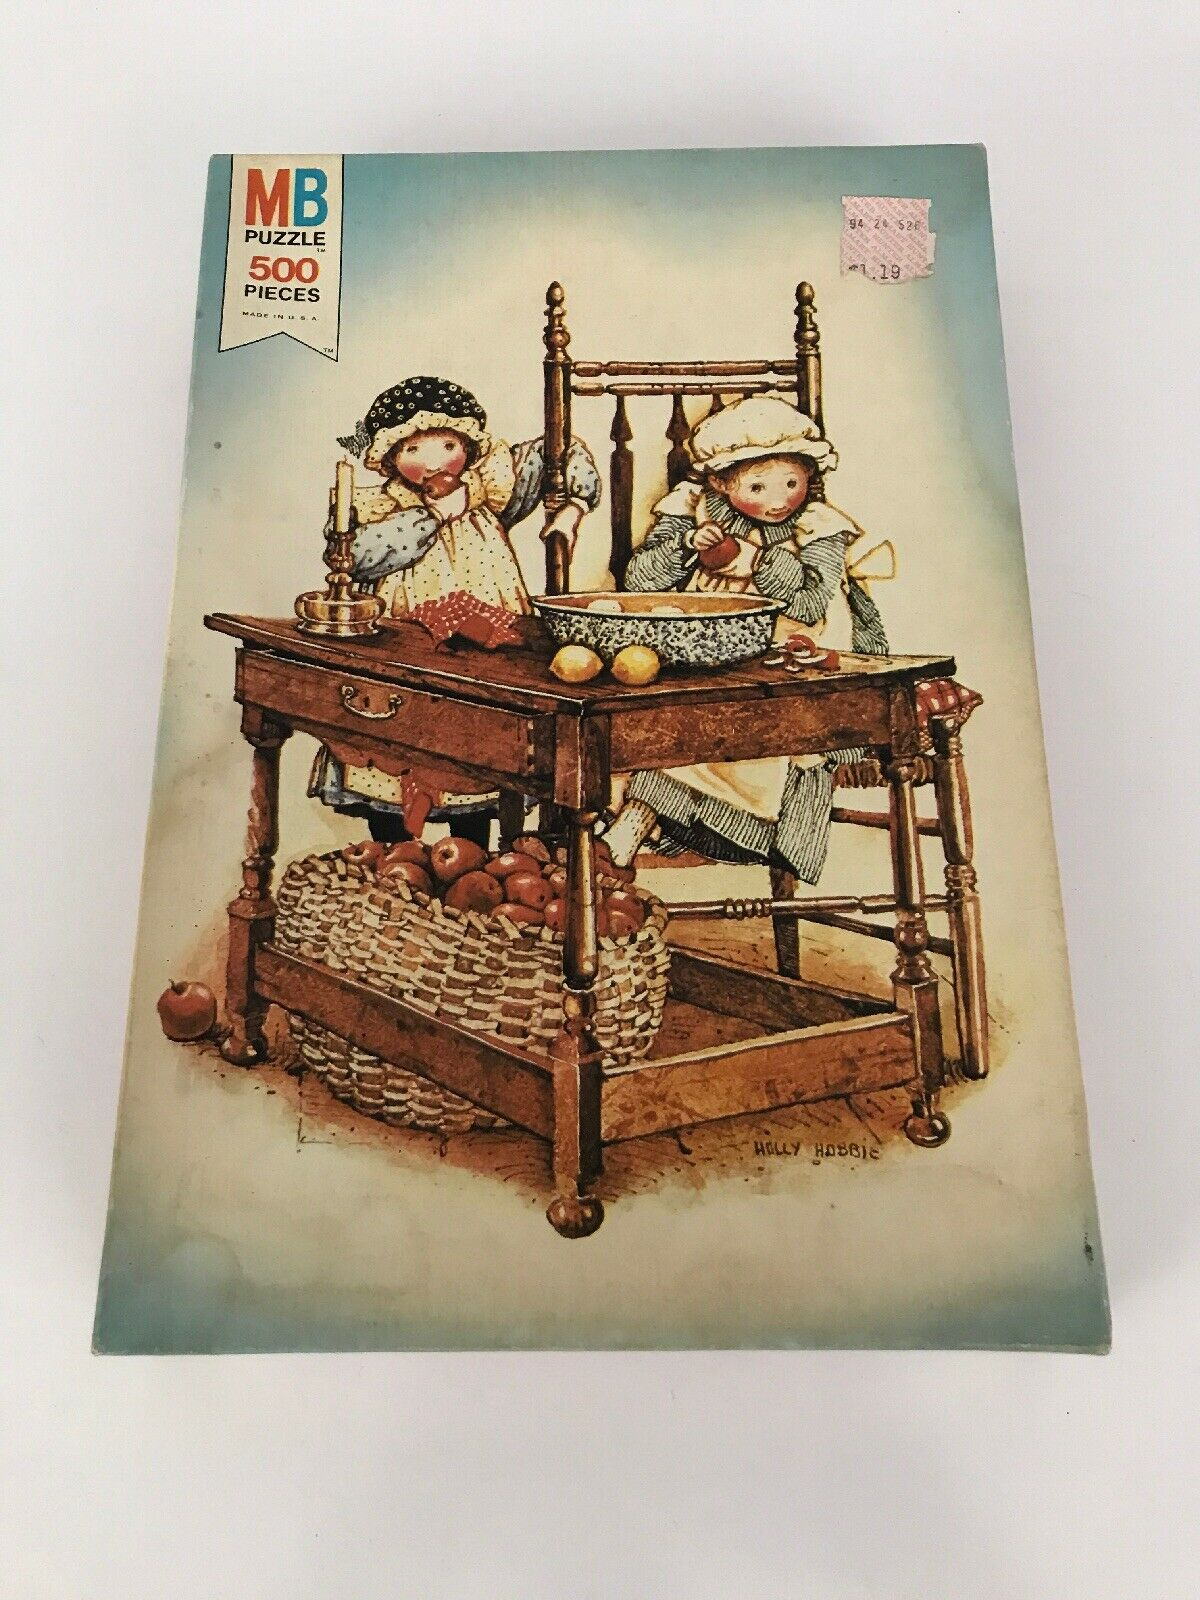 New Sealed Vintage 1975 MB Holly Hobbie Puzzle 4597-3 500 Pieces